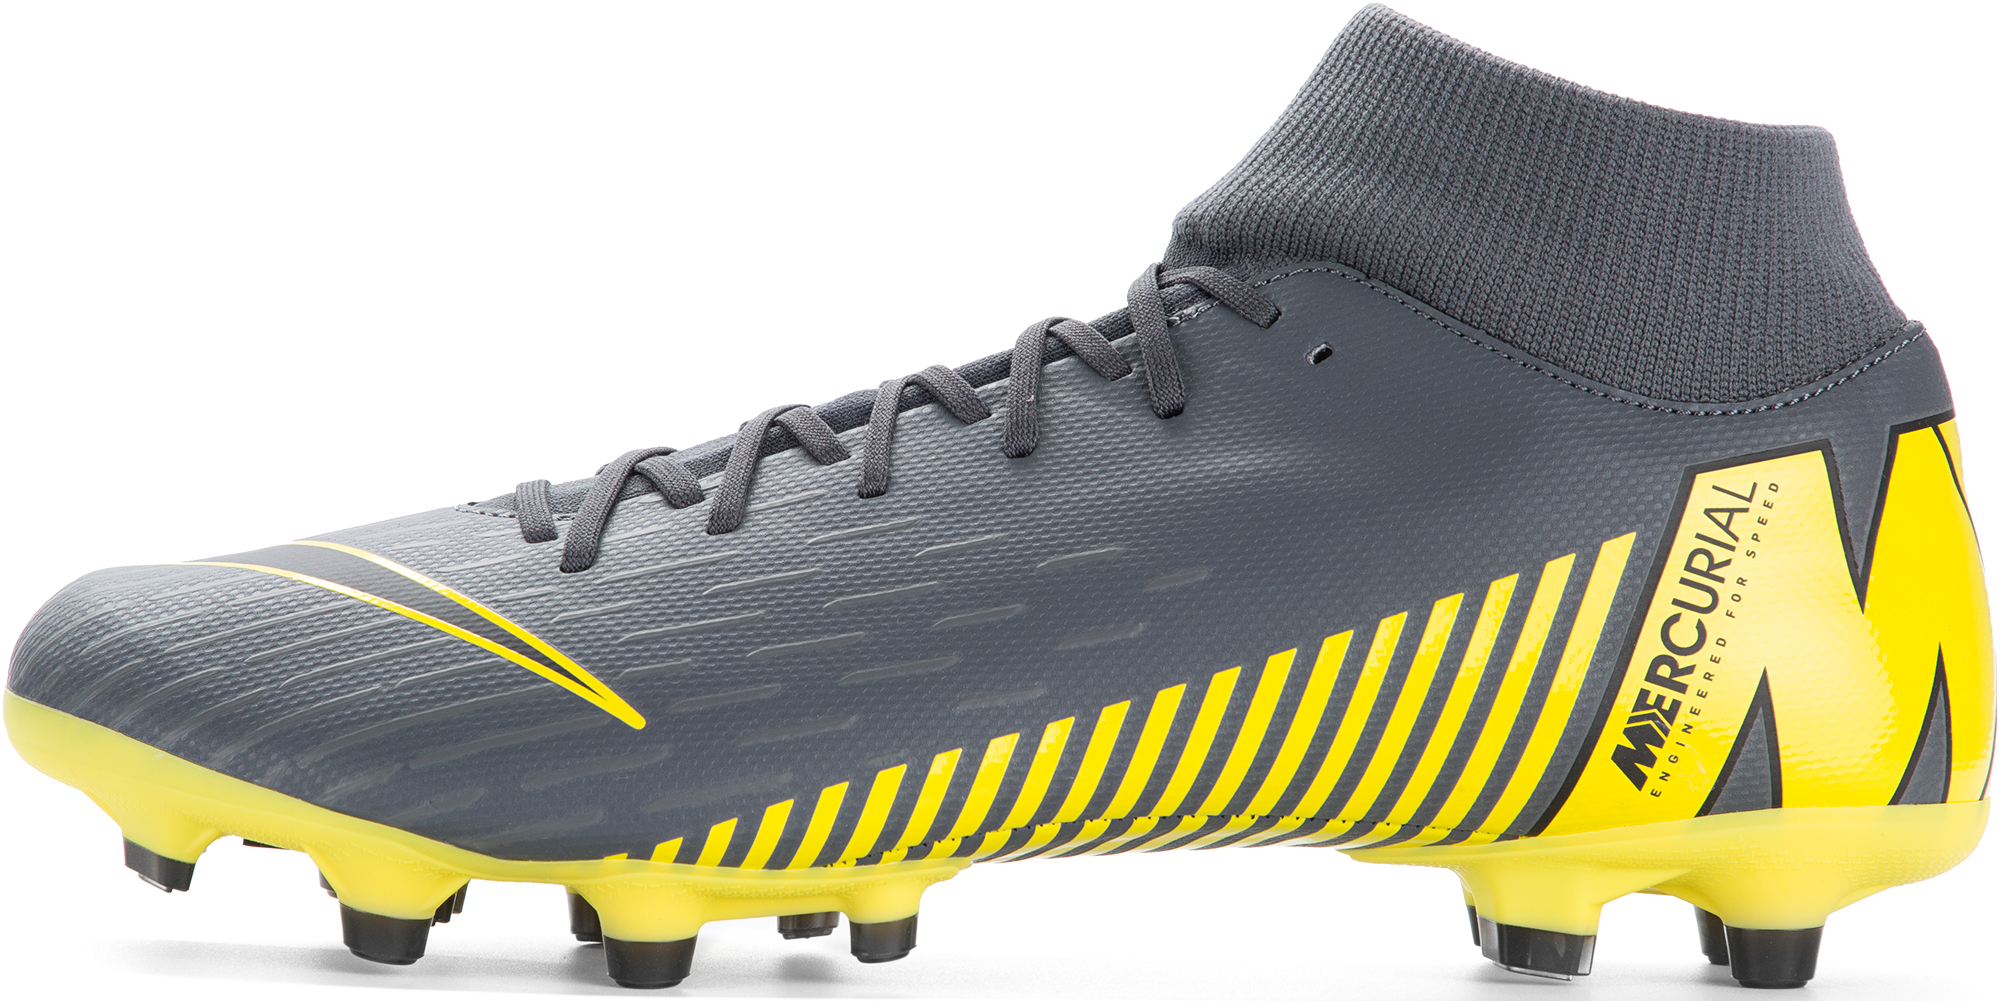 Nike Бутсы мужские Nike Mercurial Superfly 6 Academy FG/MG, размер 41,5 бутсы nike superfly 6 club fg mg ah7363 001